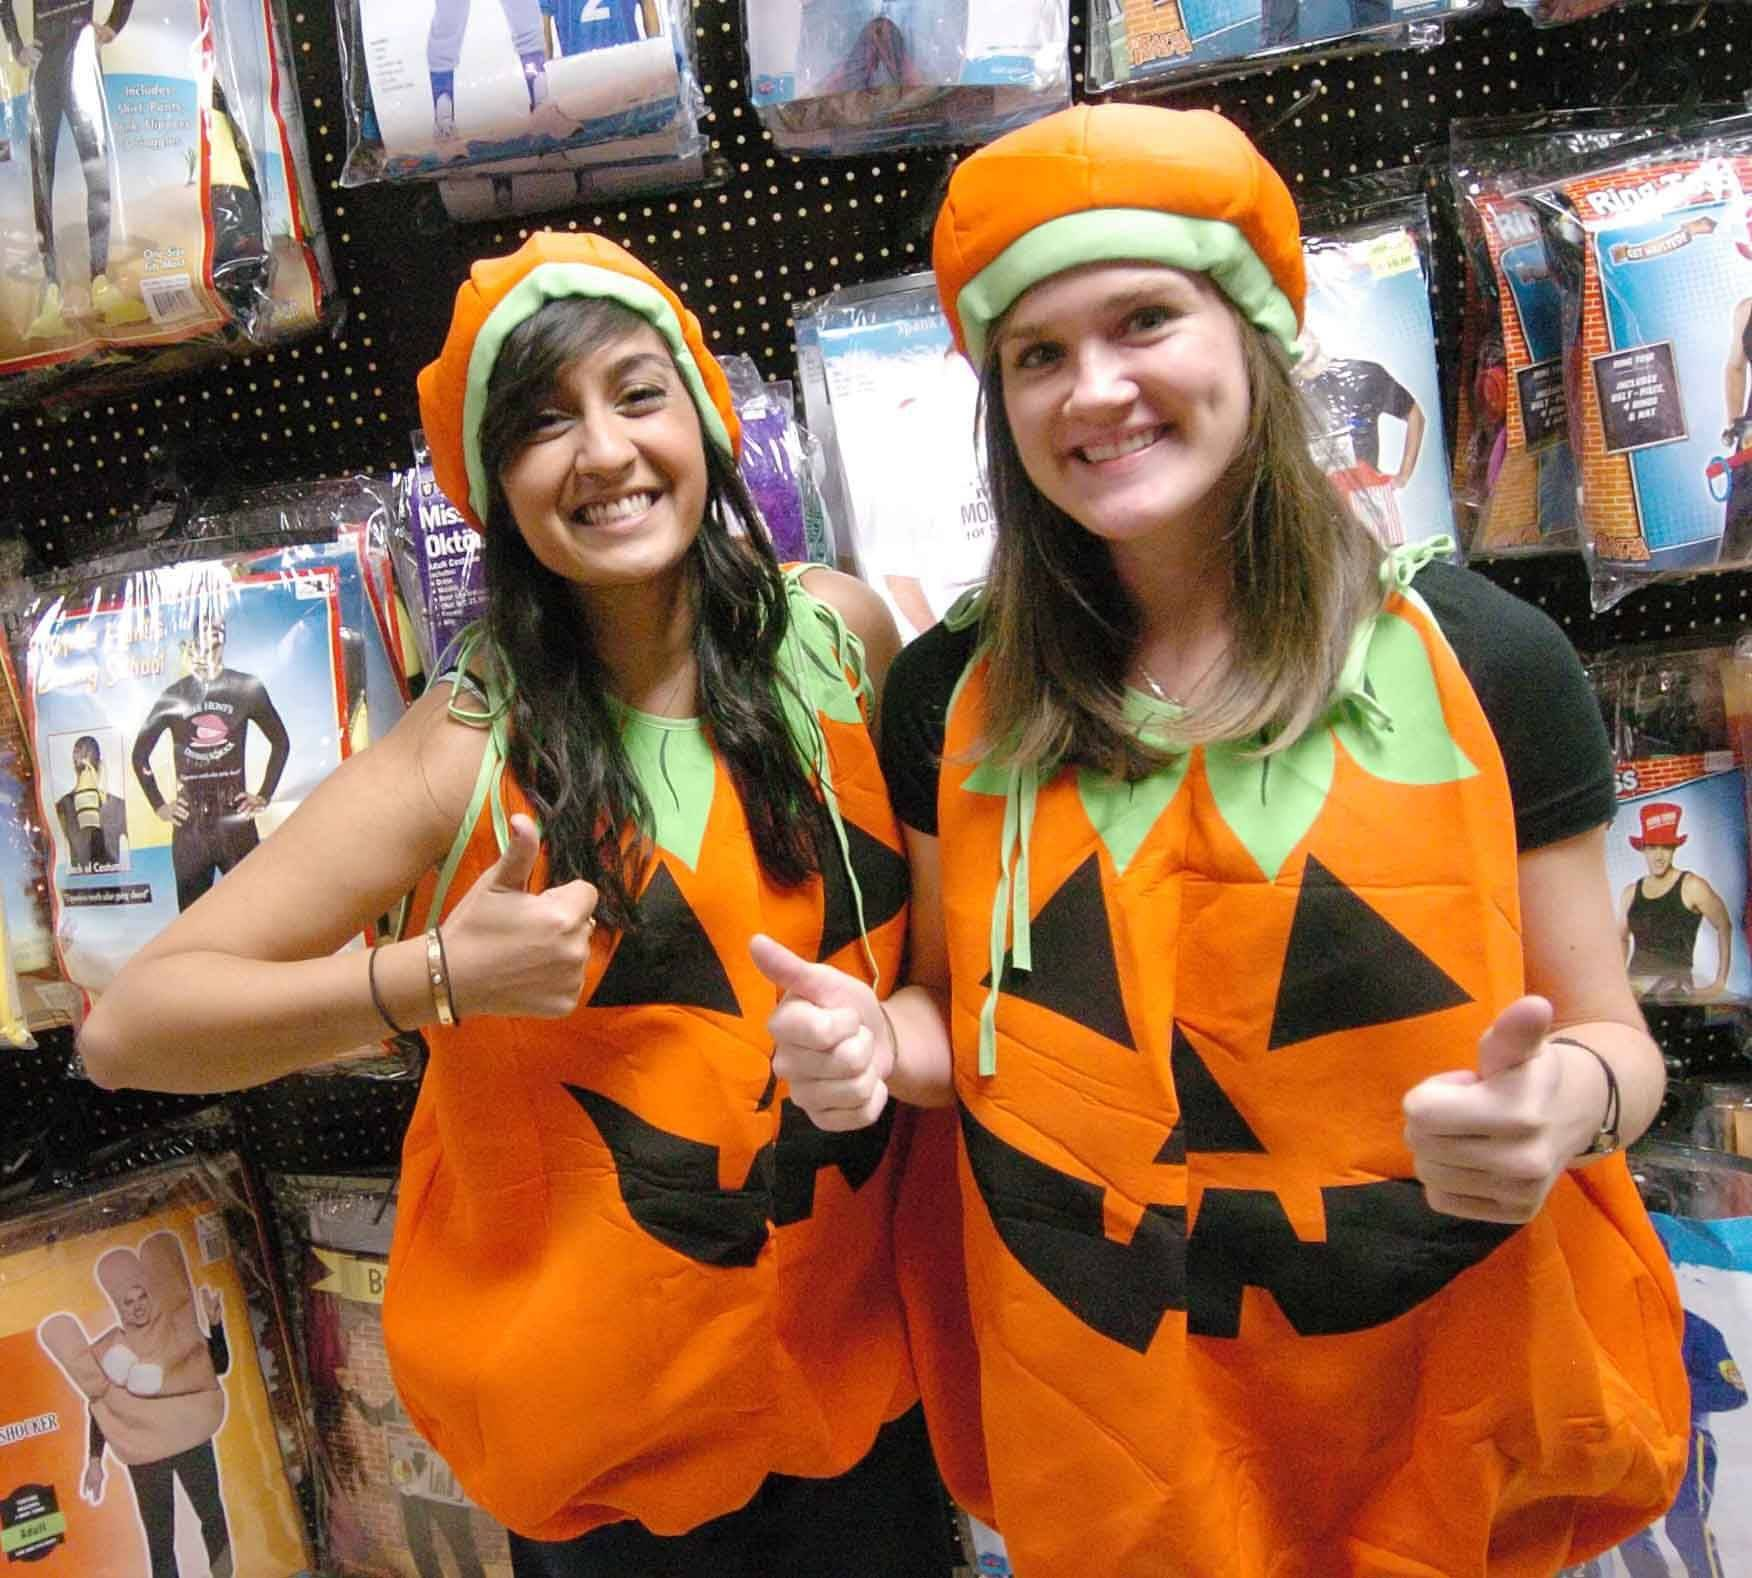 Ashley Shah, left, and Dana Koenig of Lombard opt for pumpkin costumes.